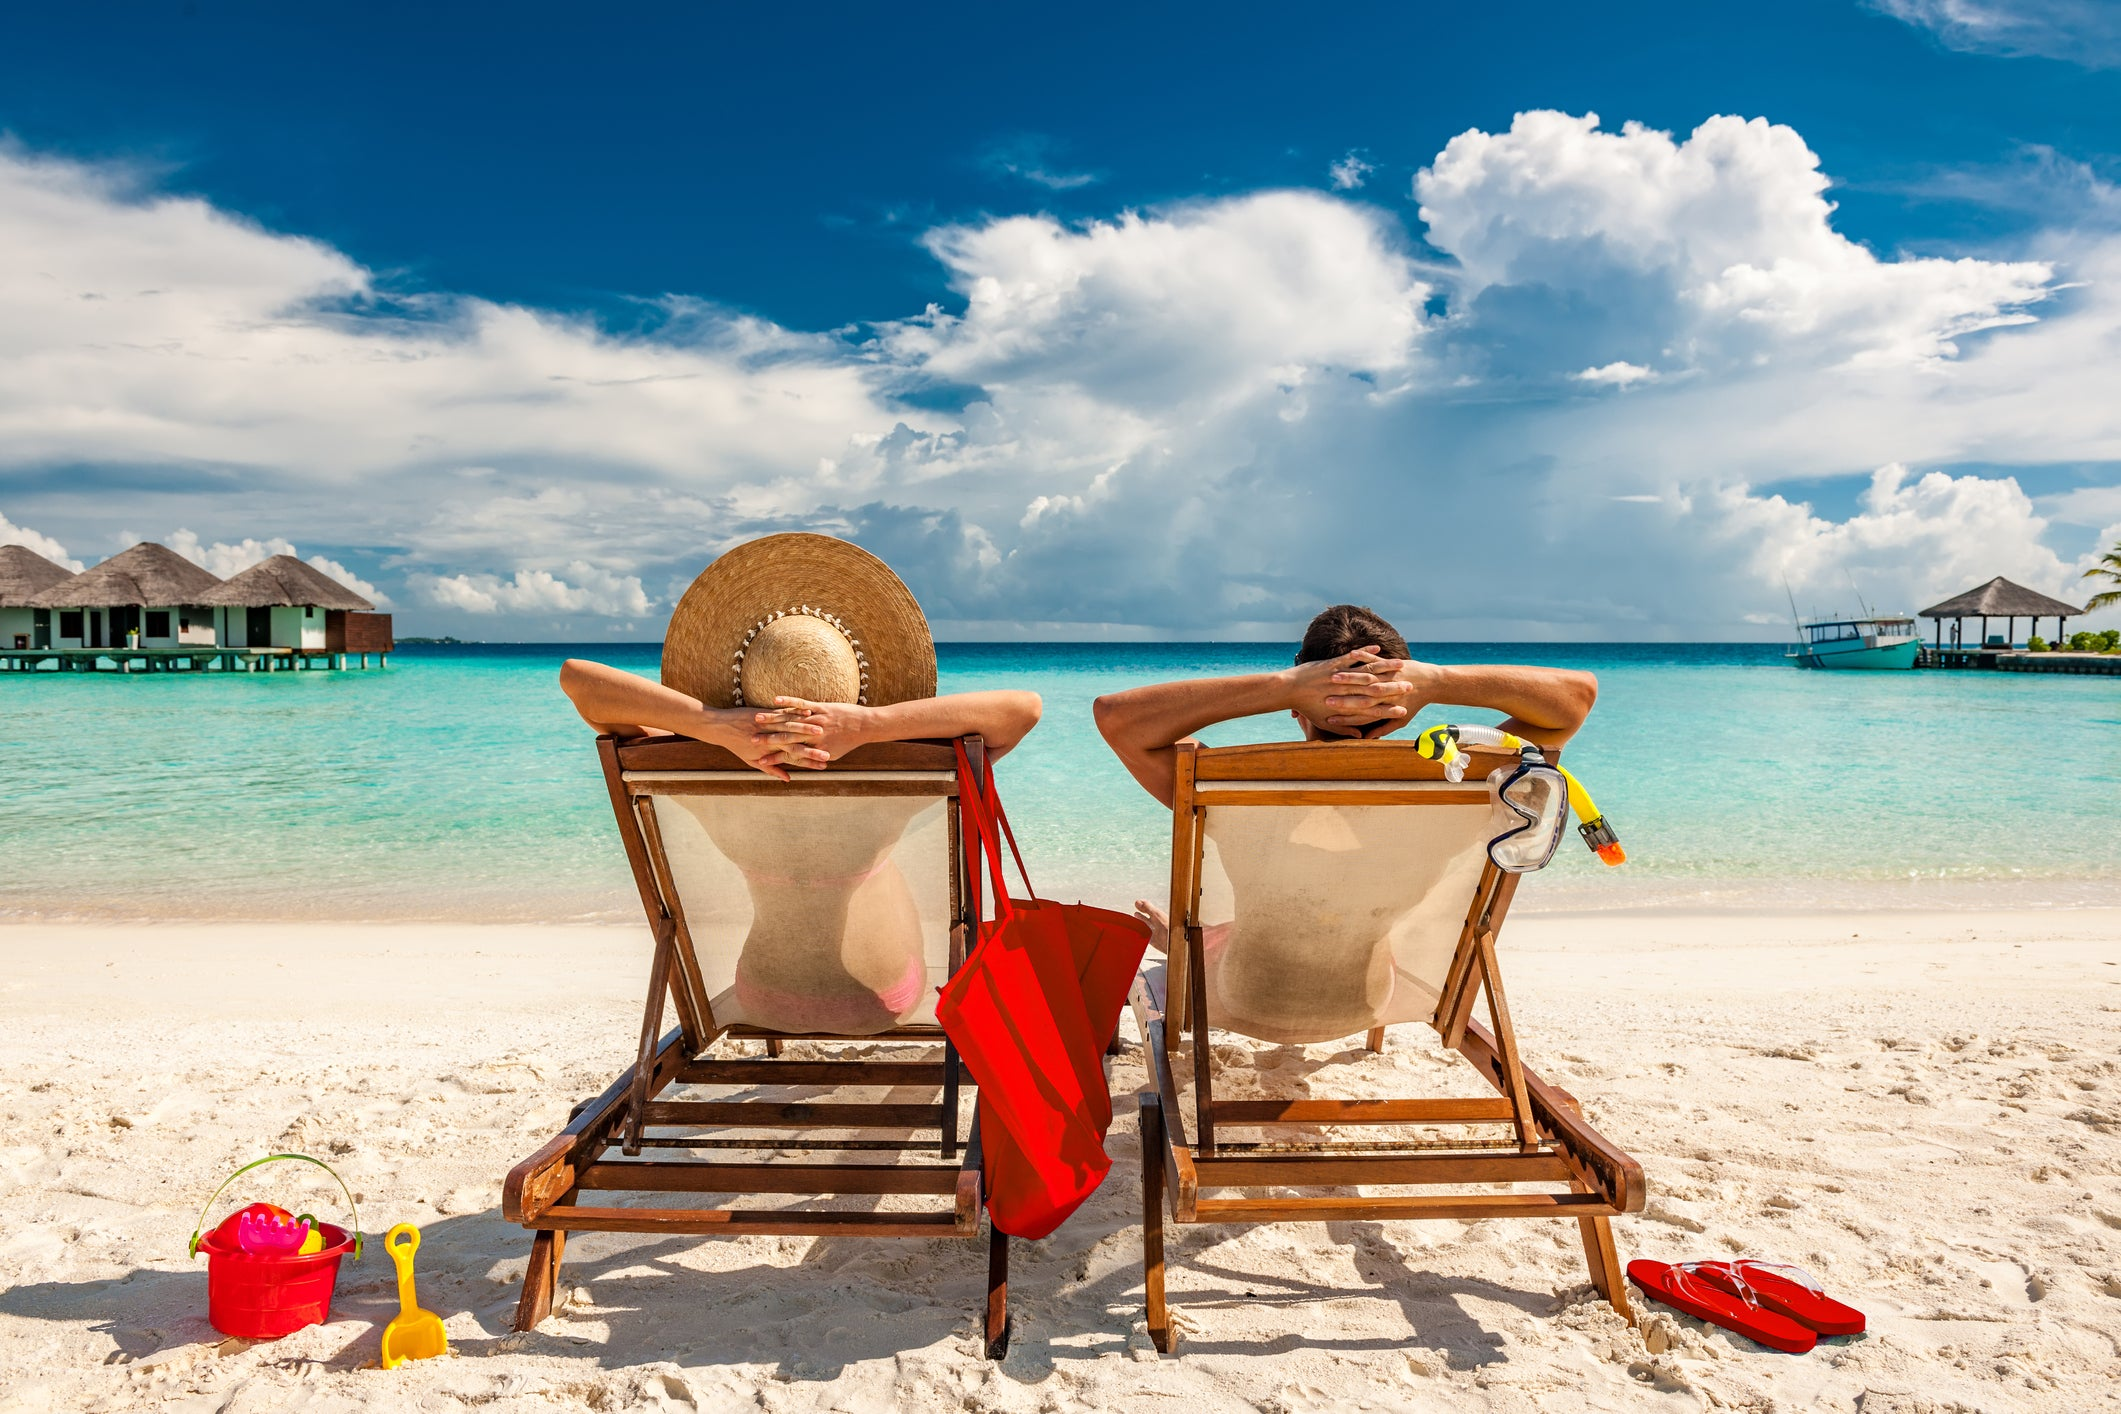 retirement early retire beach relaxing reasons vacation mature couple